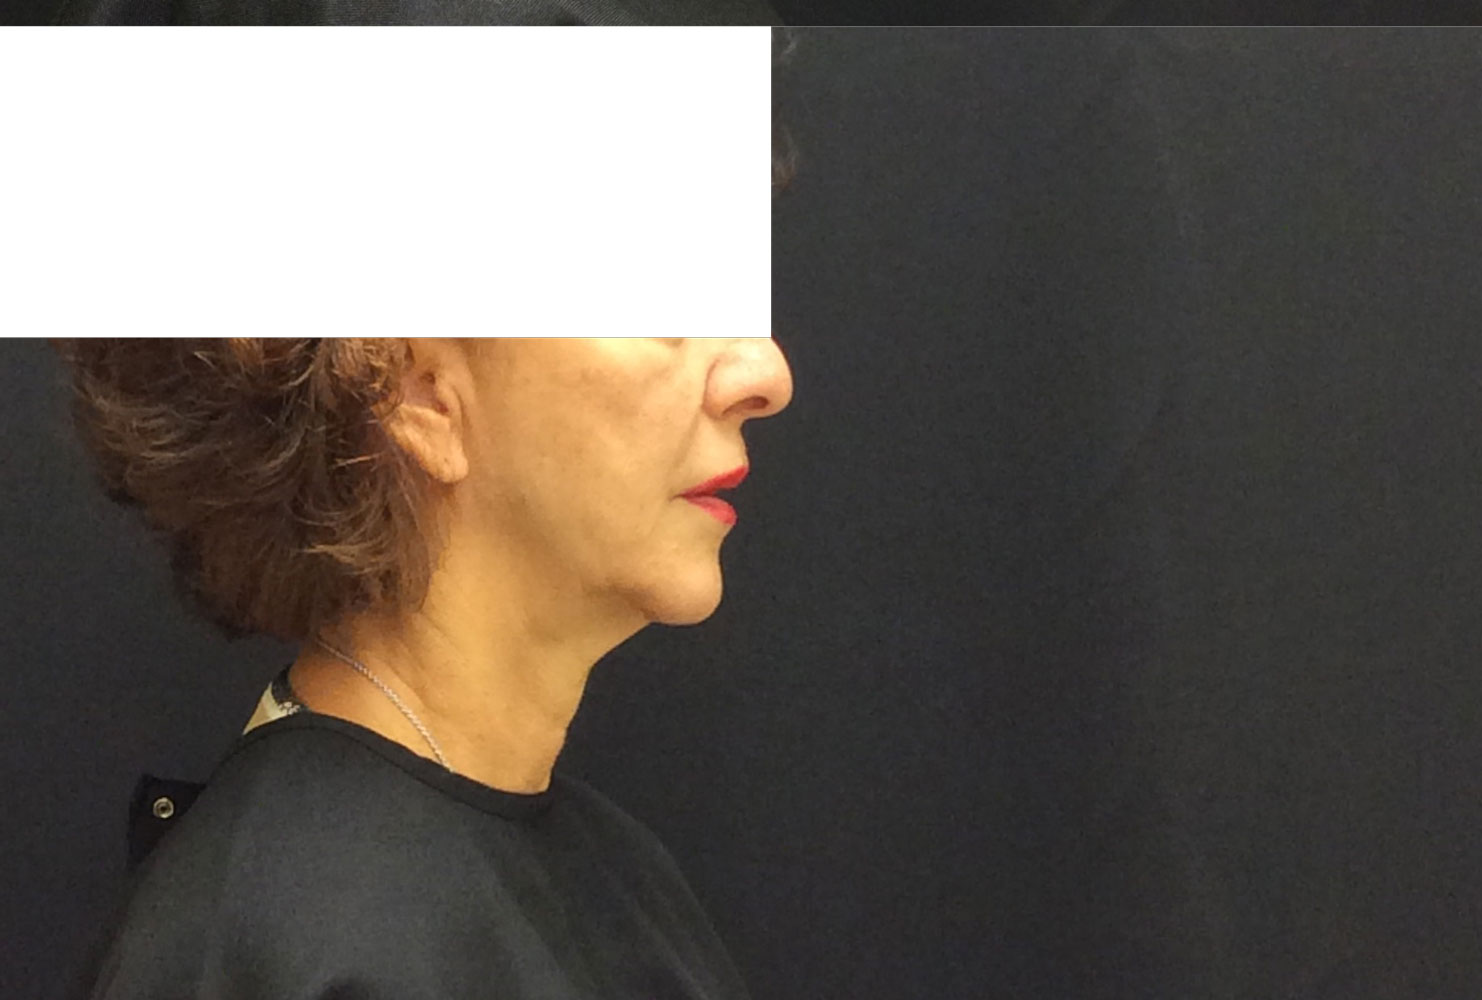 Neck after from Ultherapy before and after procedure provided by Dr. Scott Hernberg of Tomorrow's Wellness Center, NJ's premier med spa.